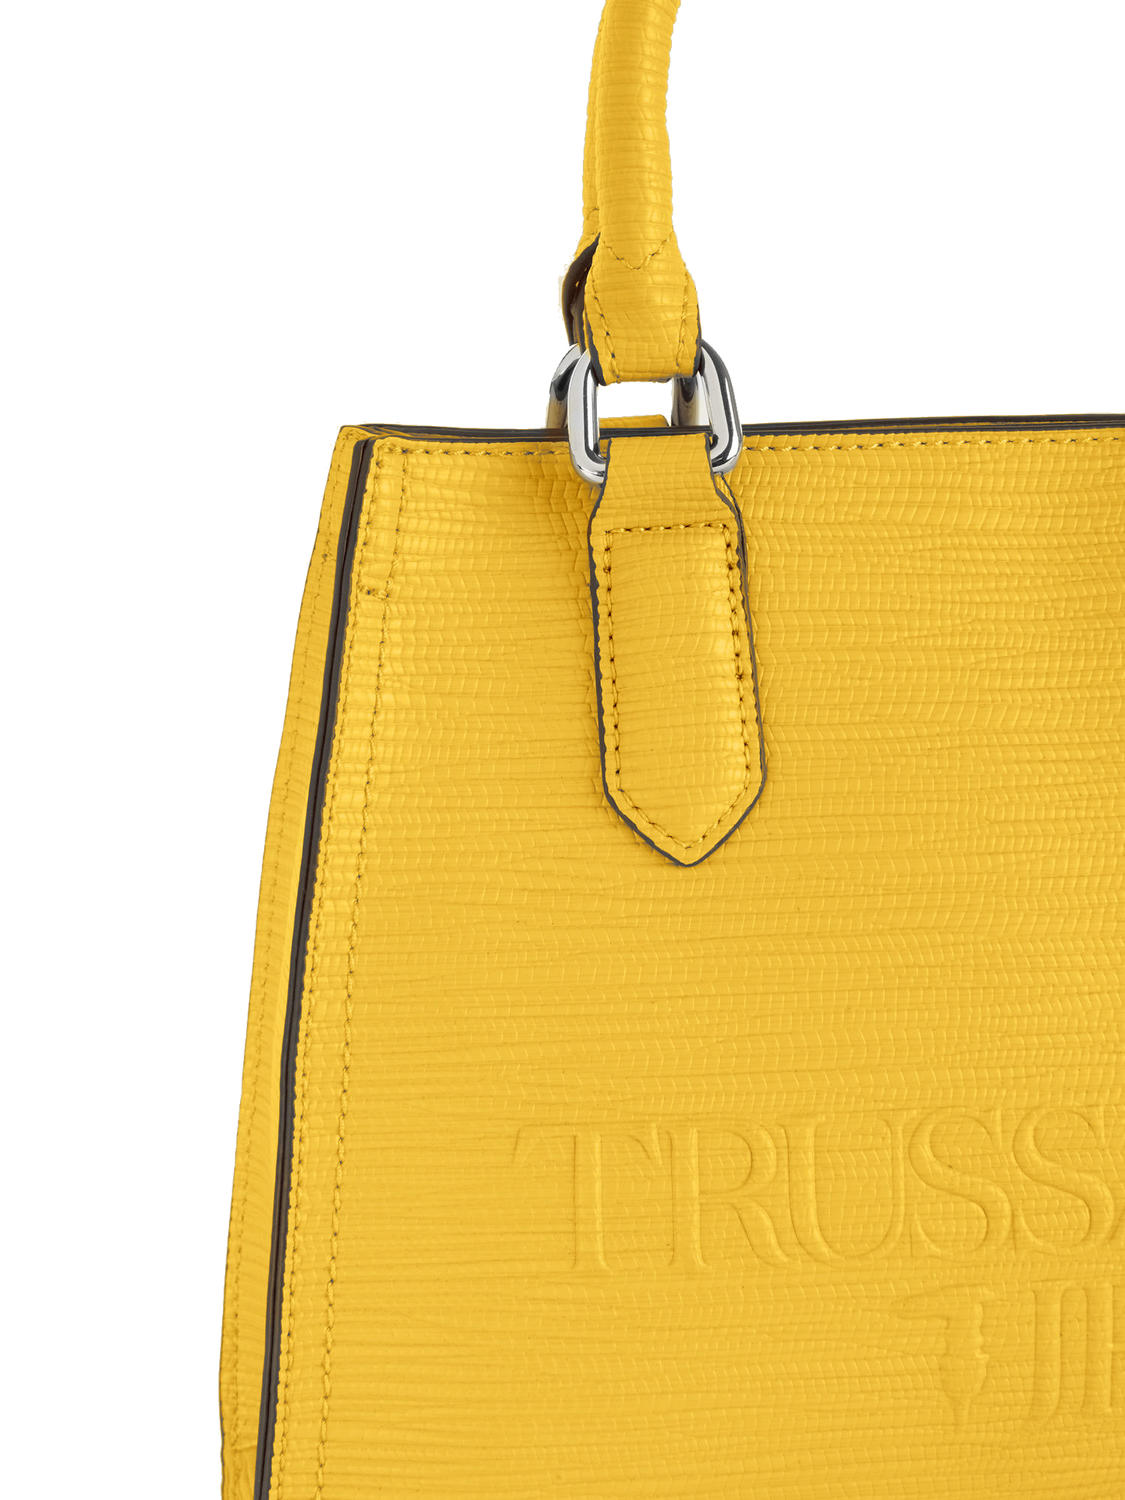 44a7a1b880 Trussardi Jeans T-Tote High Frequency Small Borsa A Mano, Con ...